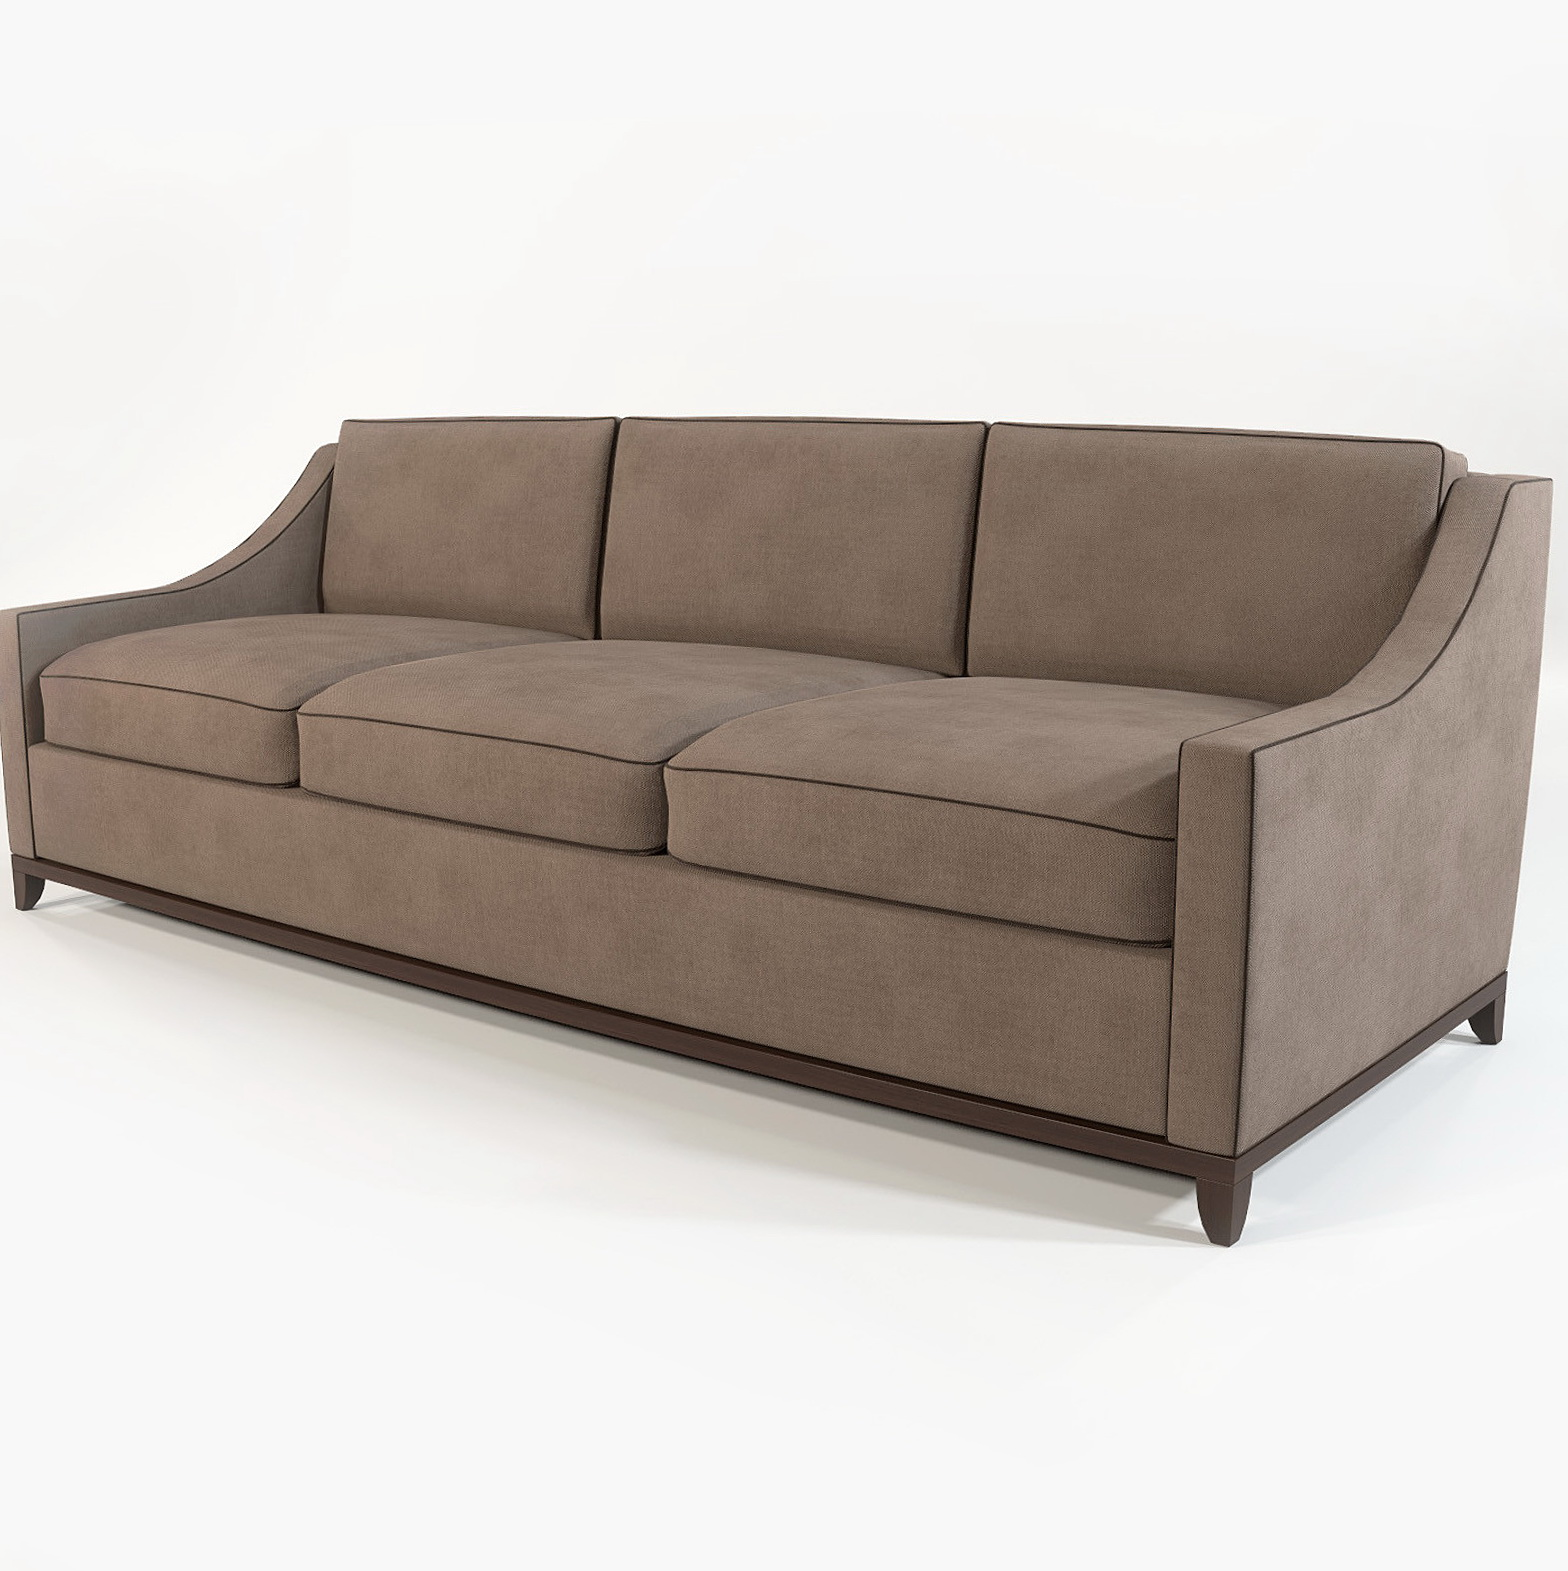 Restoration Hardware Sofa Bed